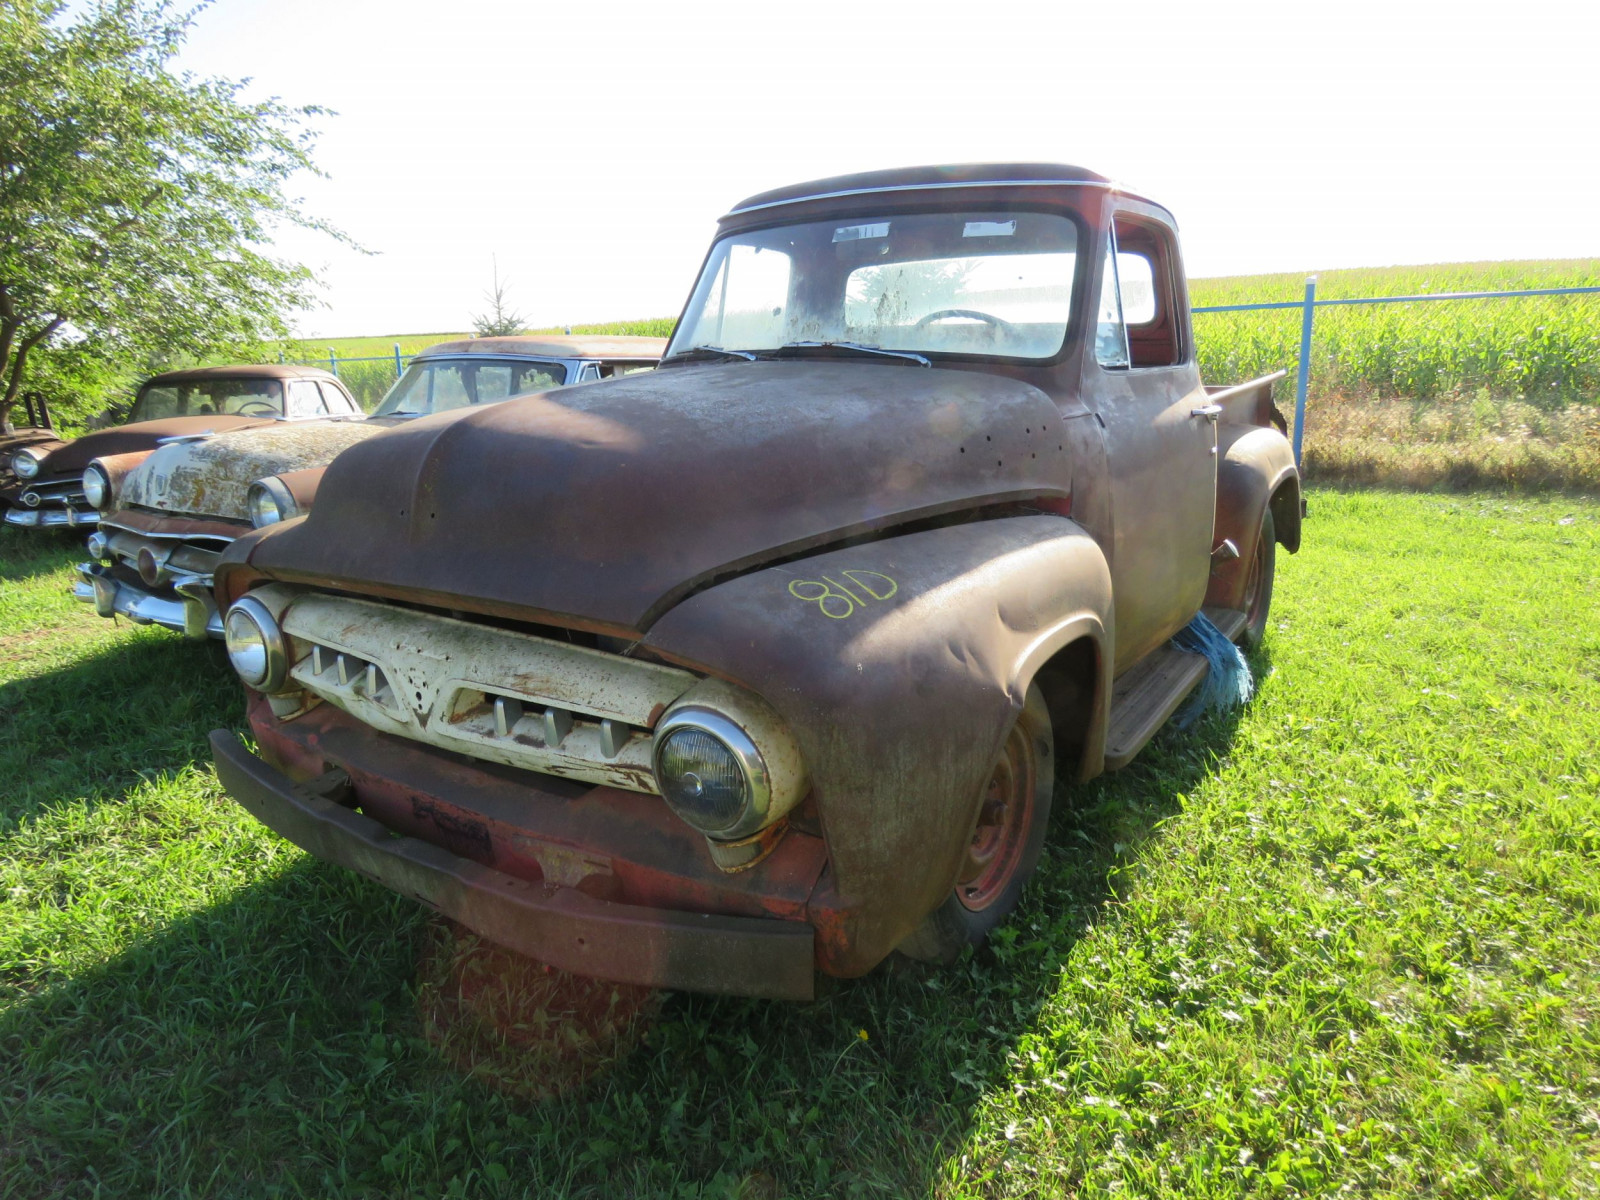 1953 Ford F100 Pickup for Rod or restore - Image 1